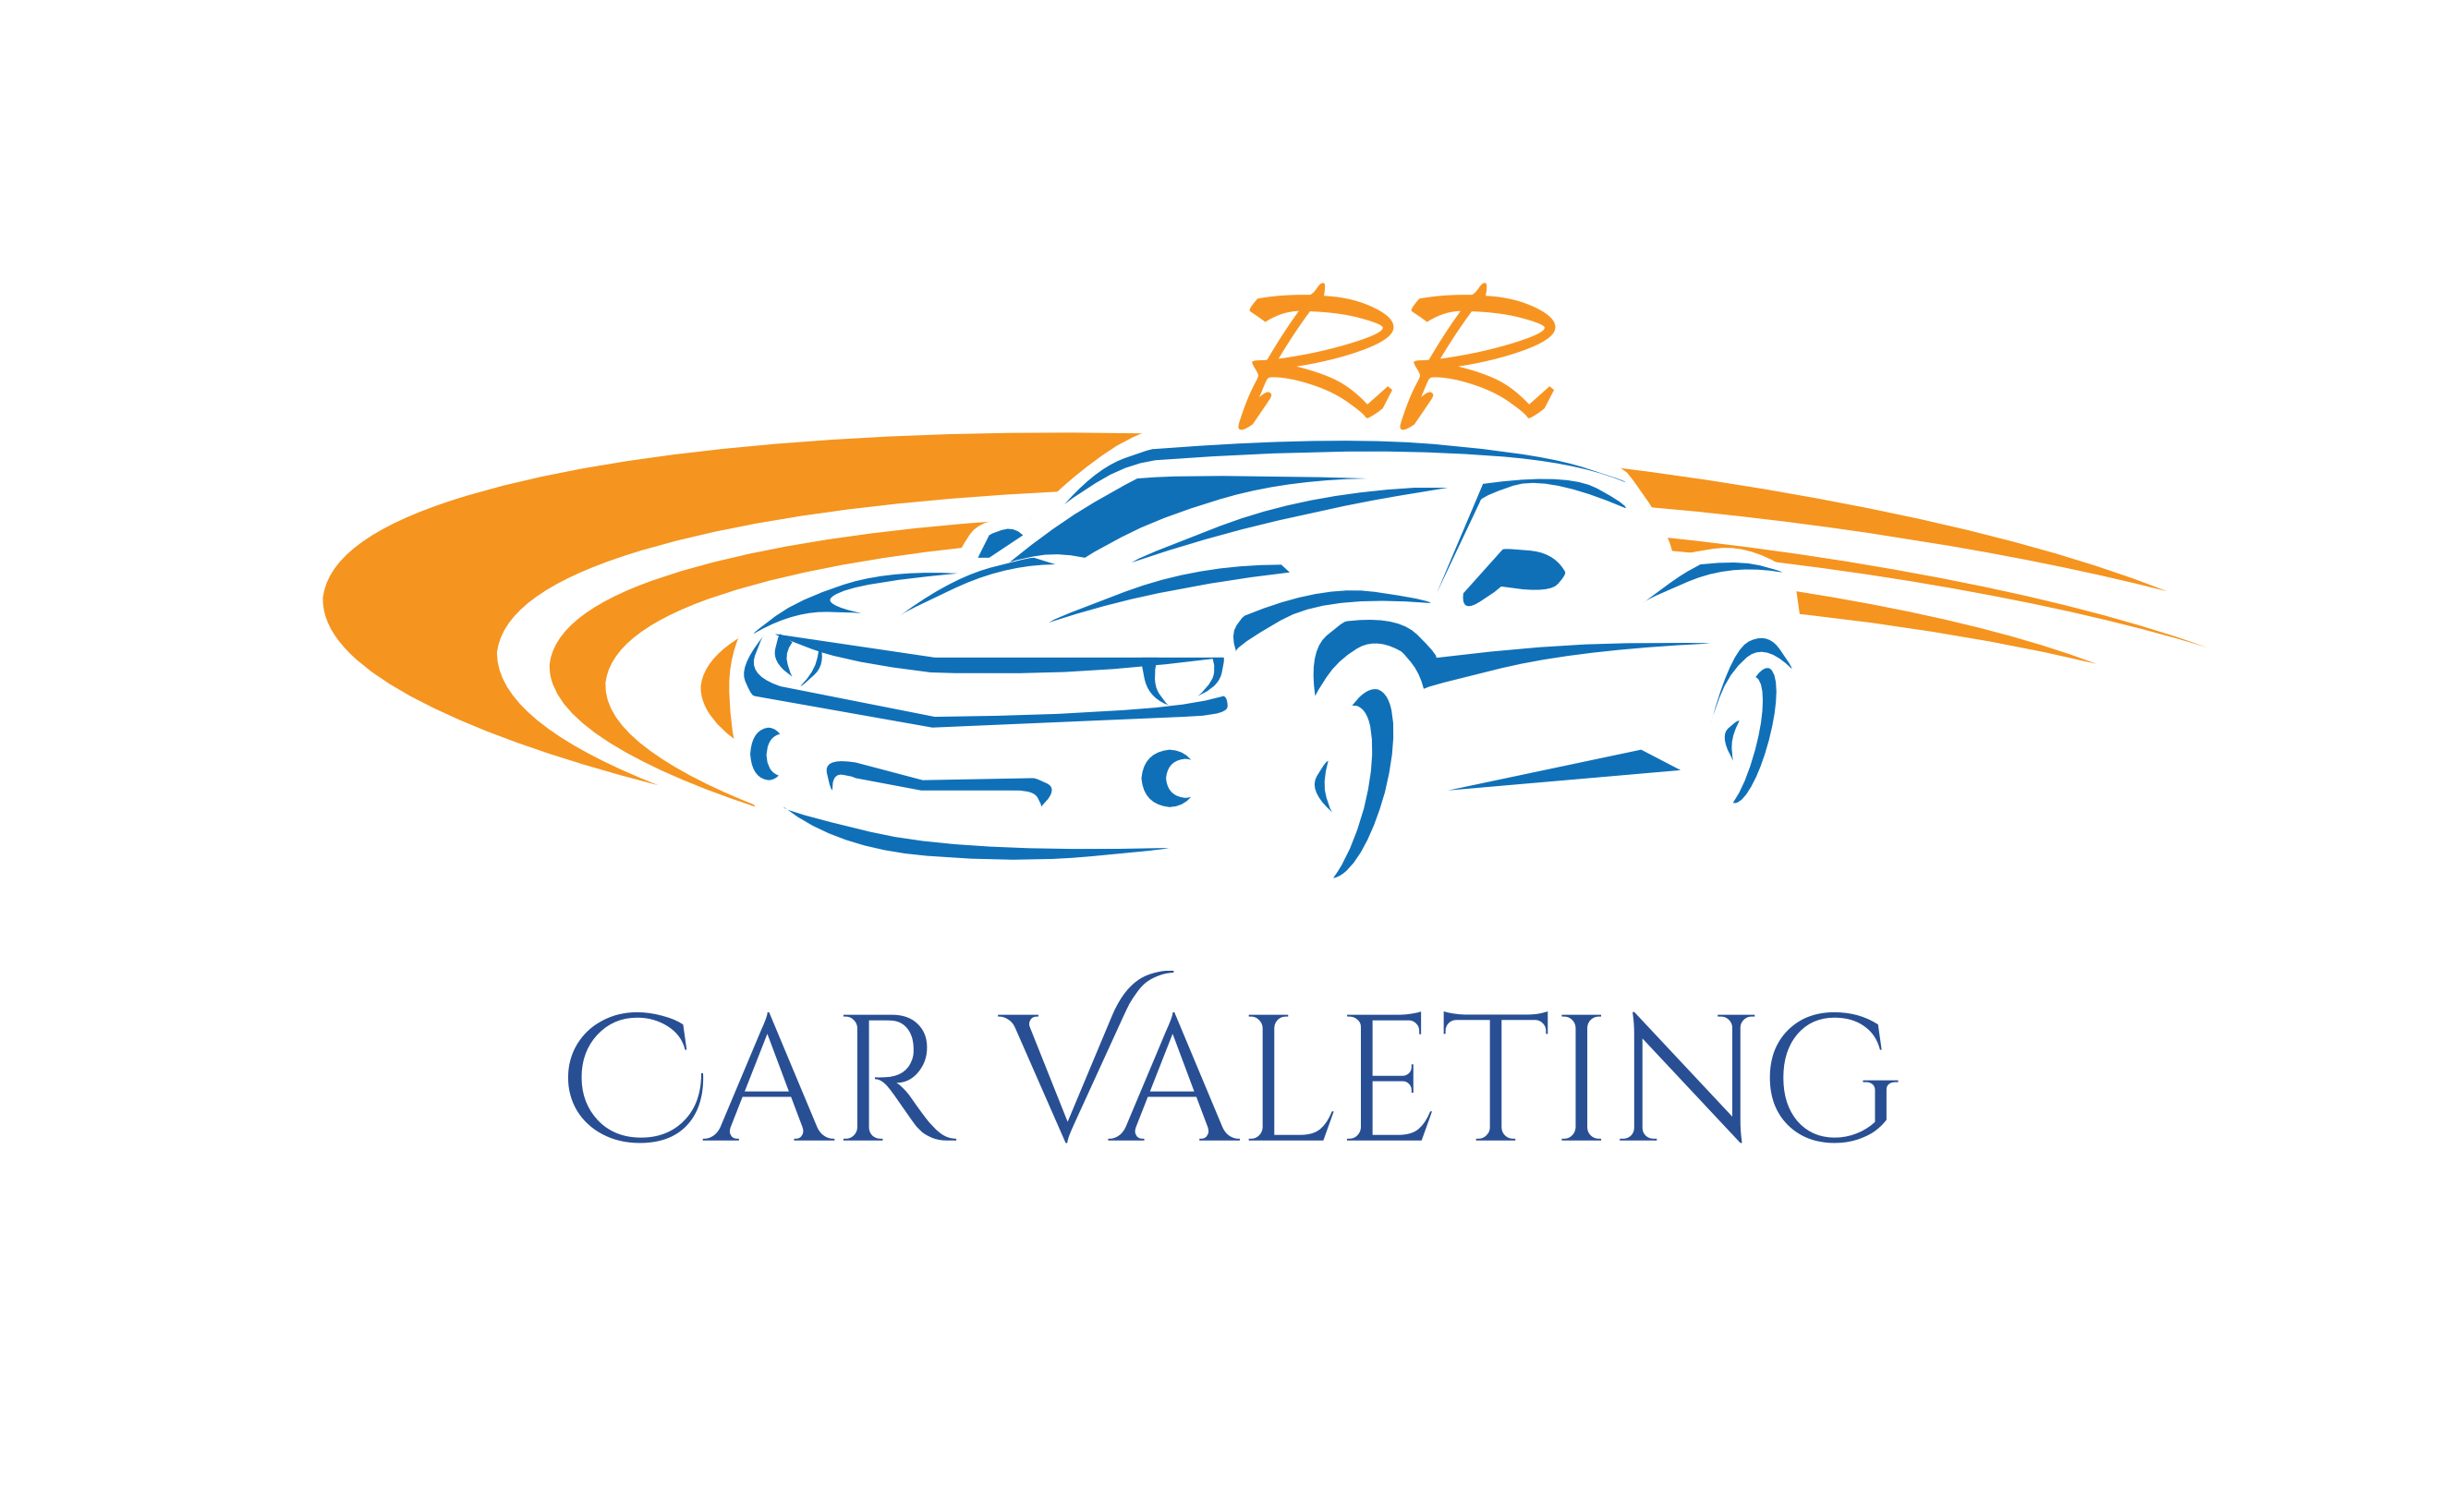 RR Car Valeting